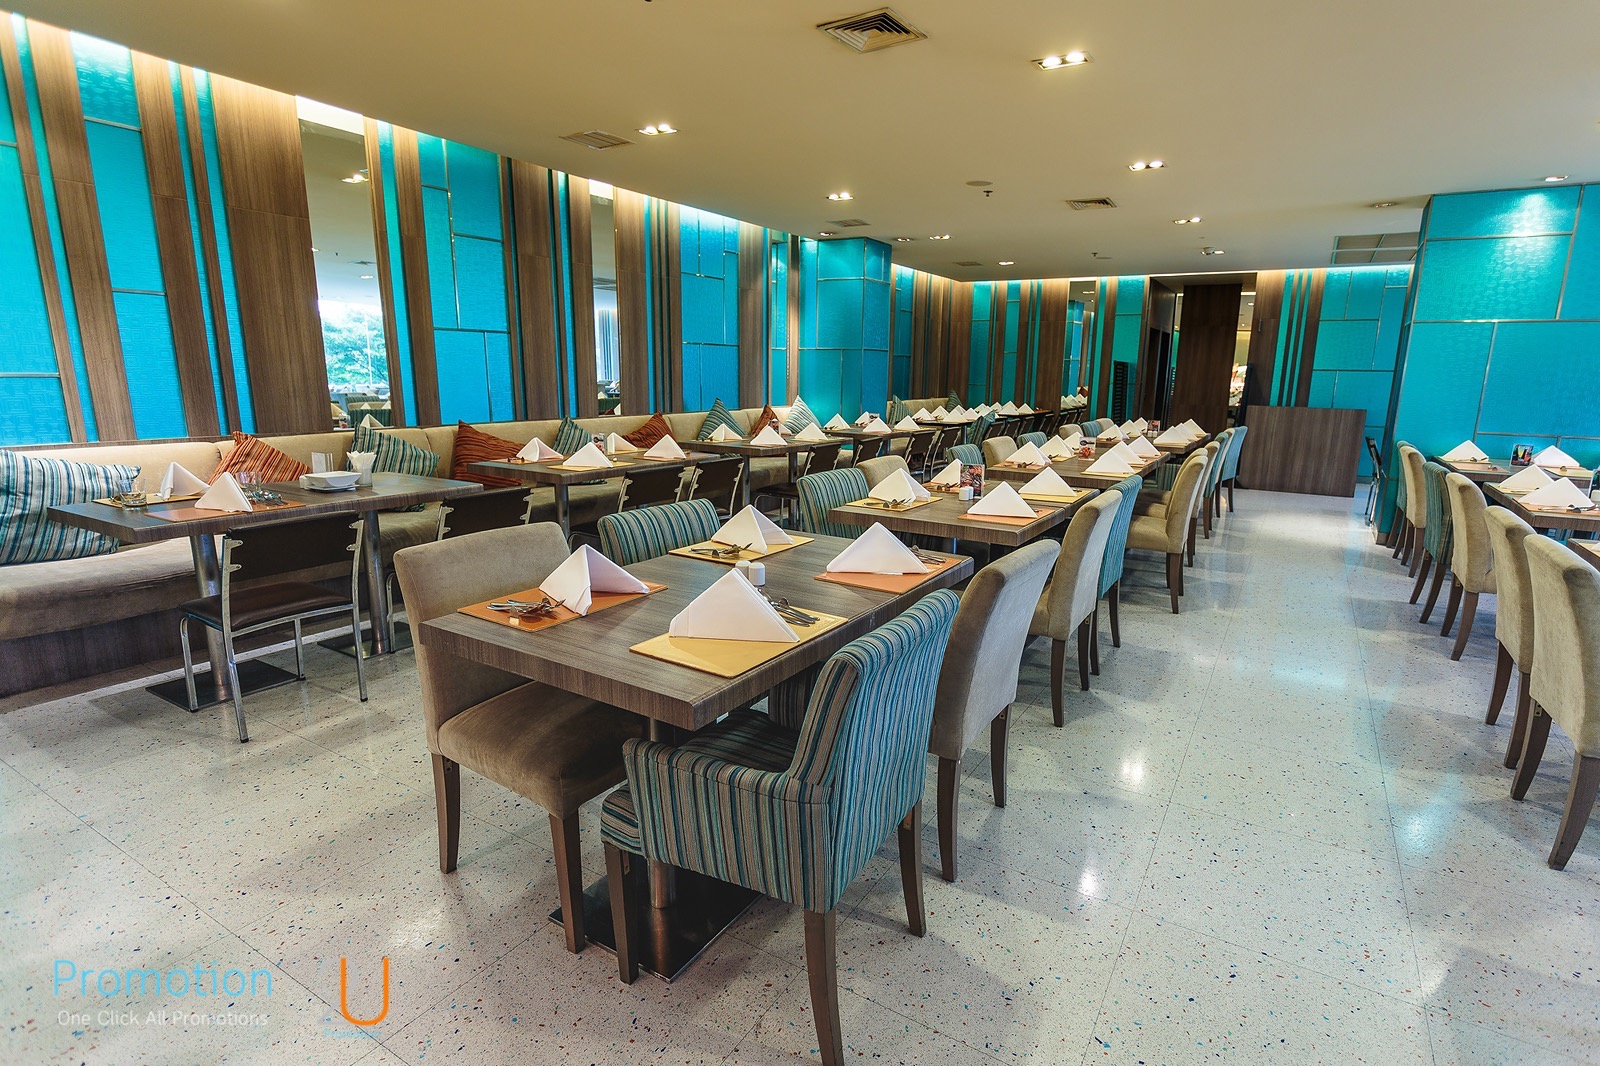 Review promotion muangthong koongtung bufft at the suare novotel impact P78